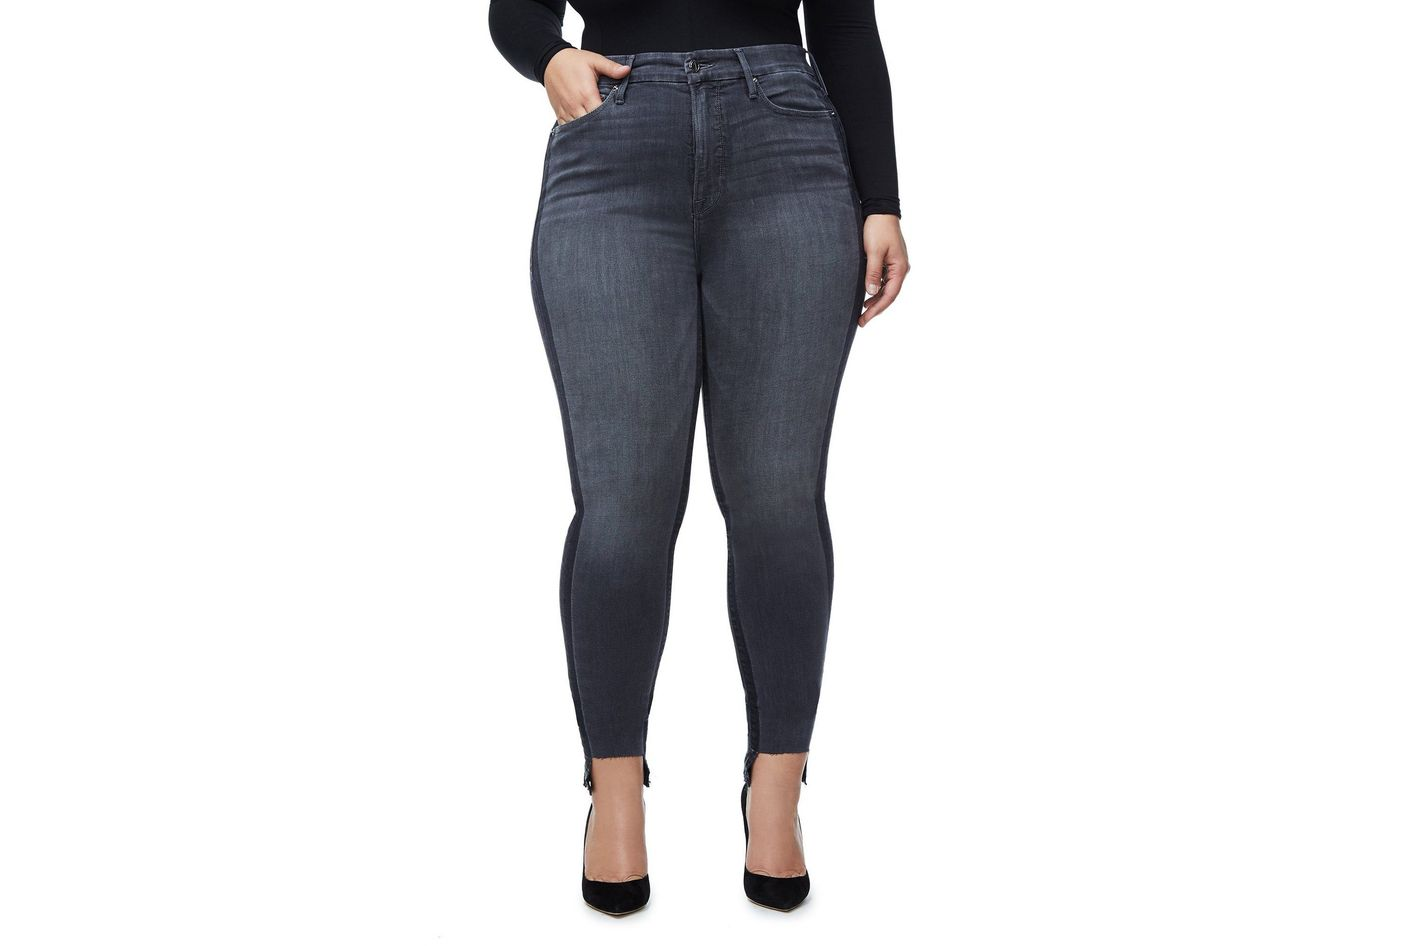 390d2097a6d 10 Best Plus-Size Jeans According to Real Women 2018